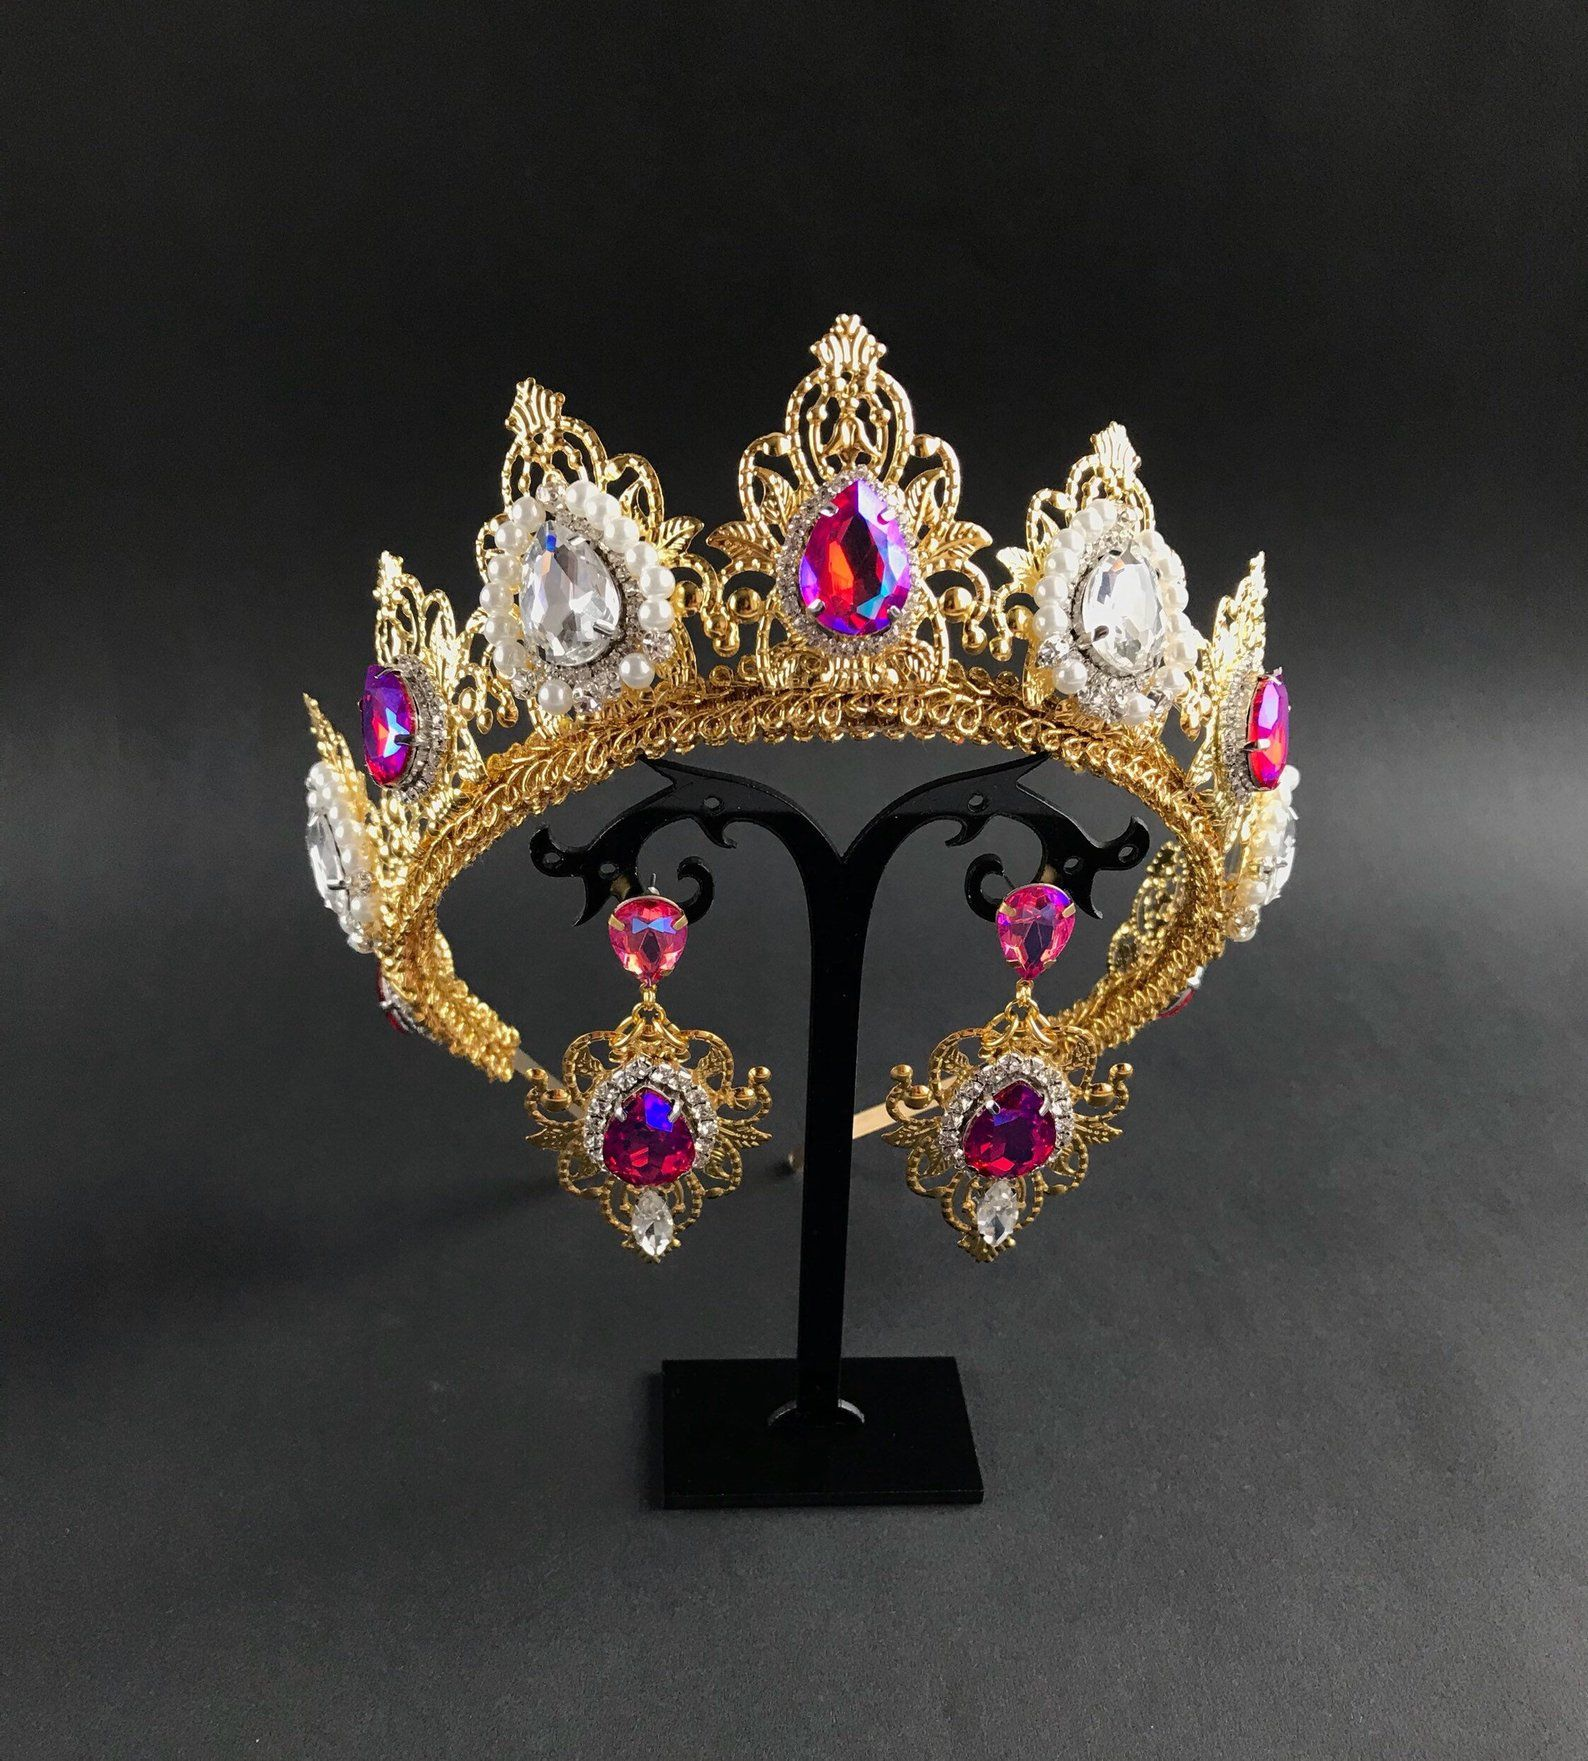 Queen Crown Tiara Gold Pink Jewelry Set Crystal Pearls